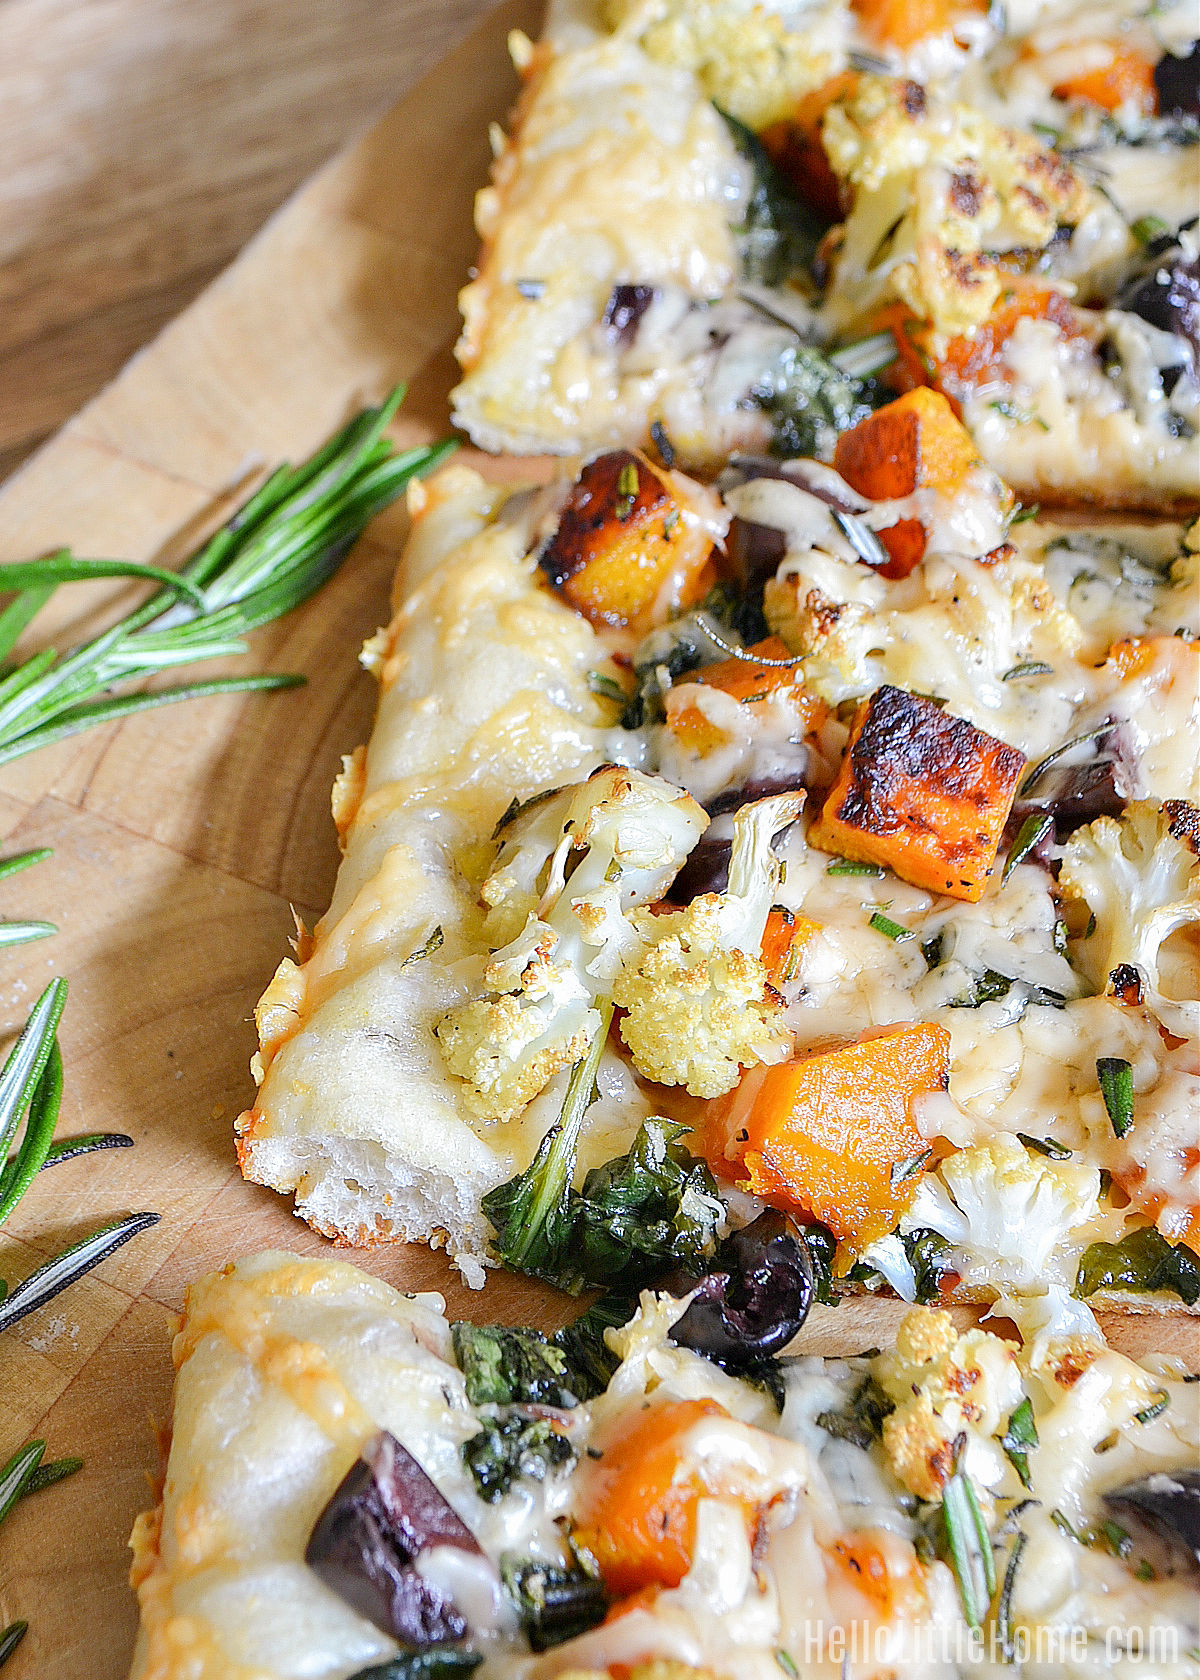 Closeup of the finished roasted vegetable pizza.